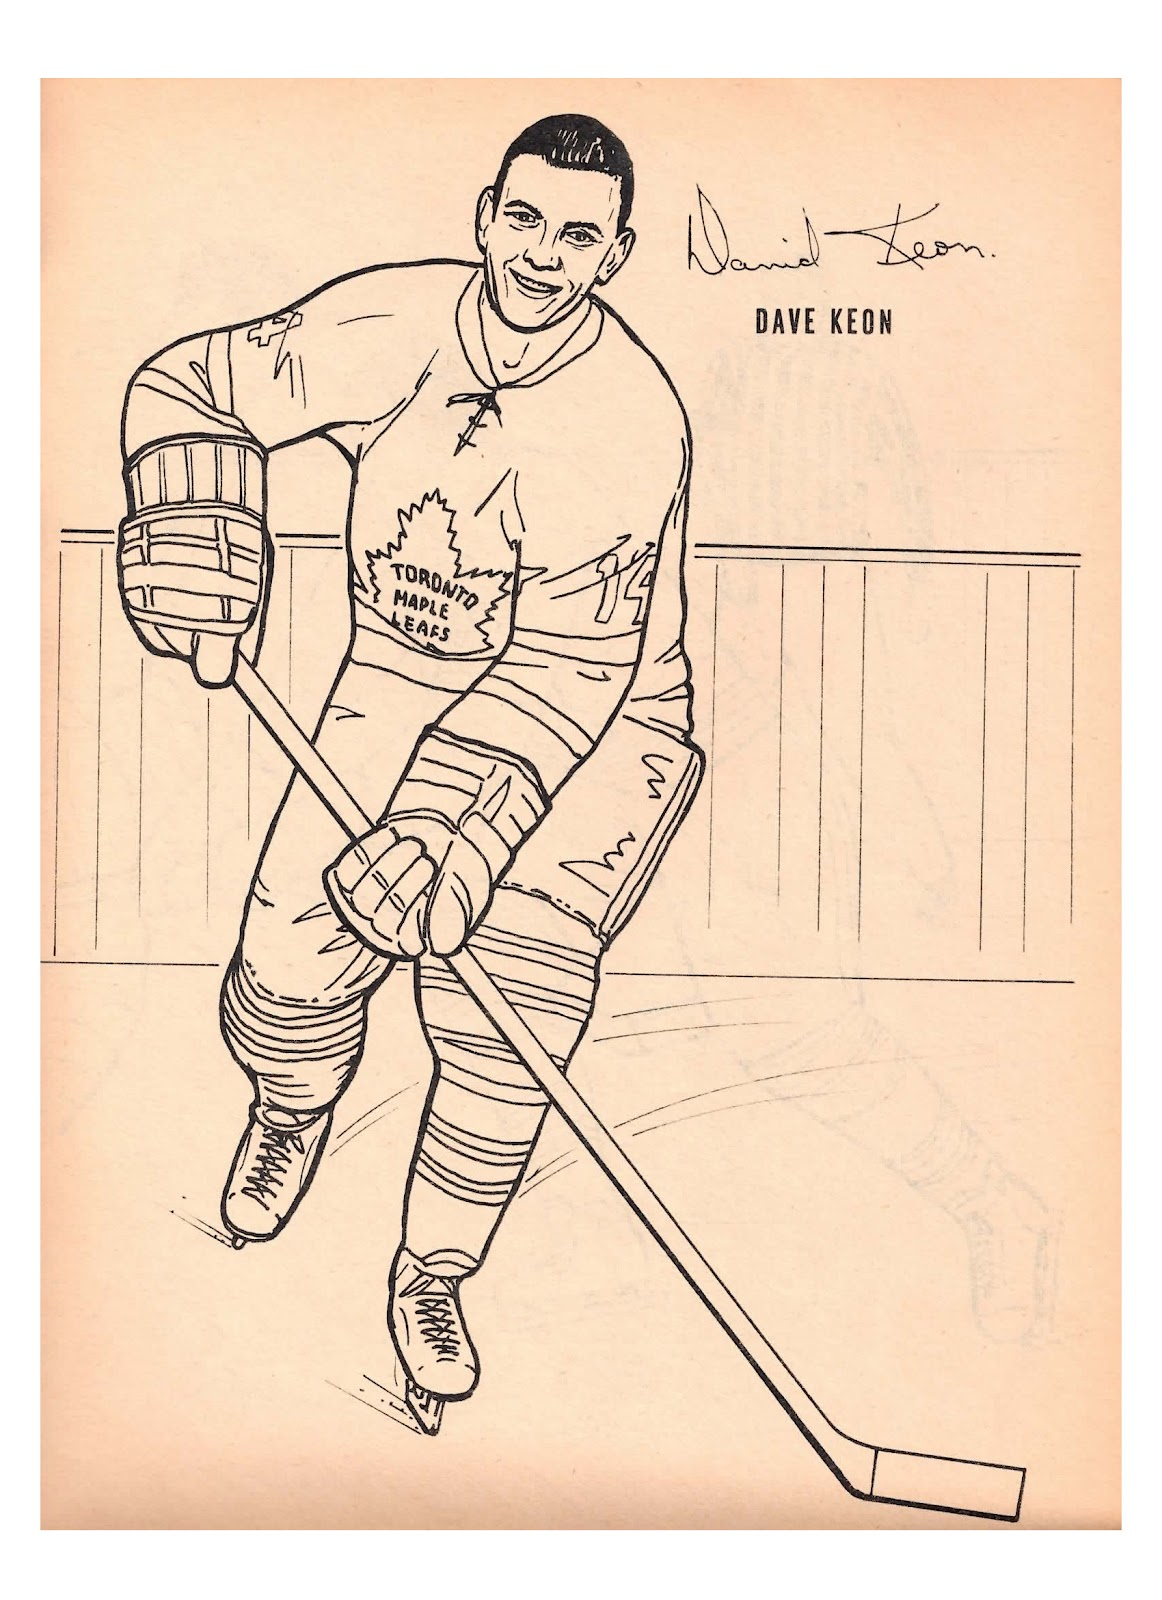 coloring page of a maple leaf - nitzy 39 s hockey den maple leafs 1964 colouring book